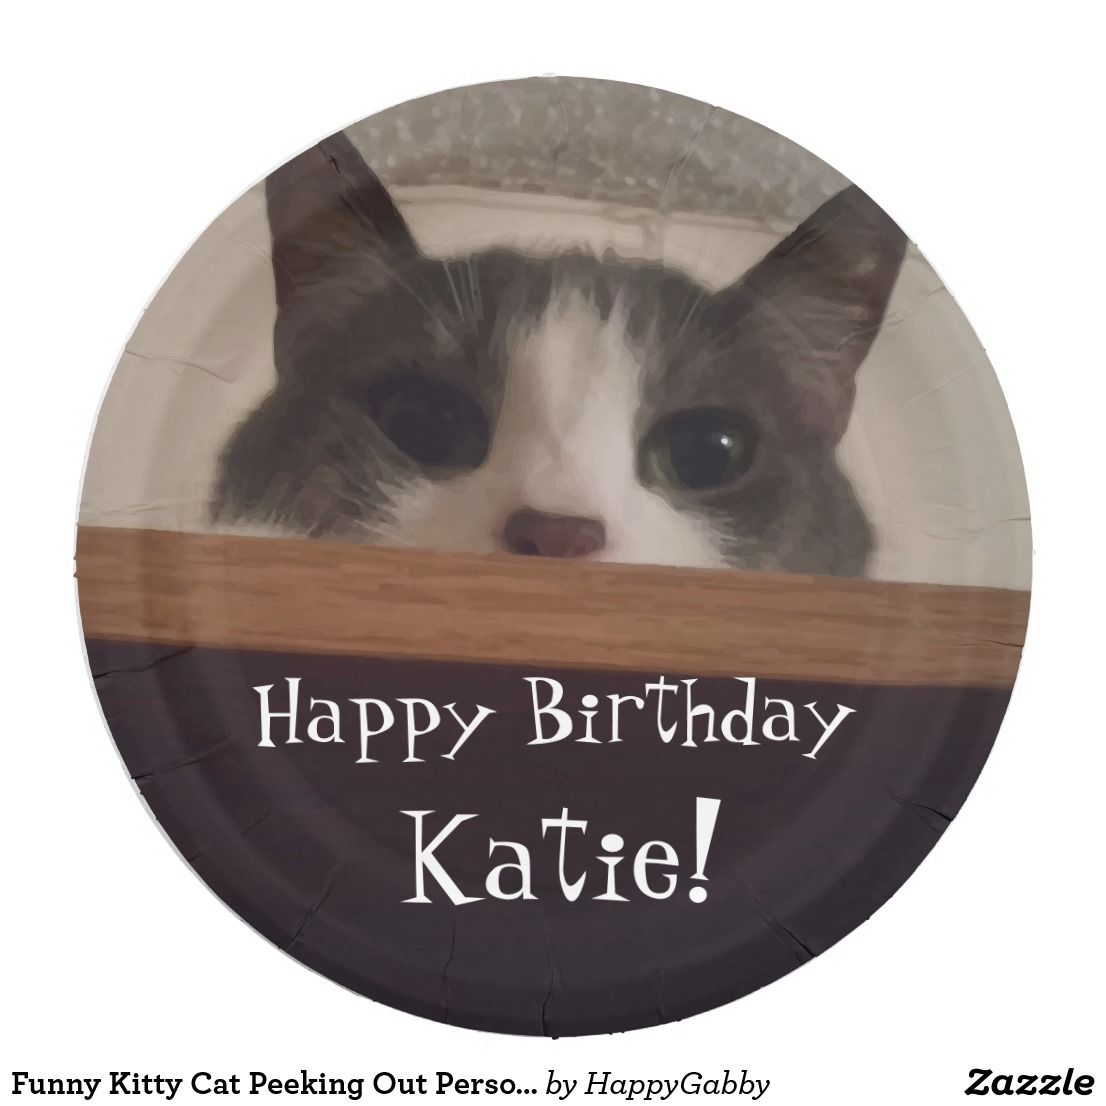 Funny Kitty Cat Peeking Out Personalized Birthday Paper Plate  sc 1 st  Pinterest & Kitty Cat Peeking Out Personalized Birthday Paper Plate